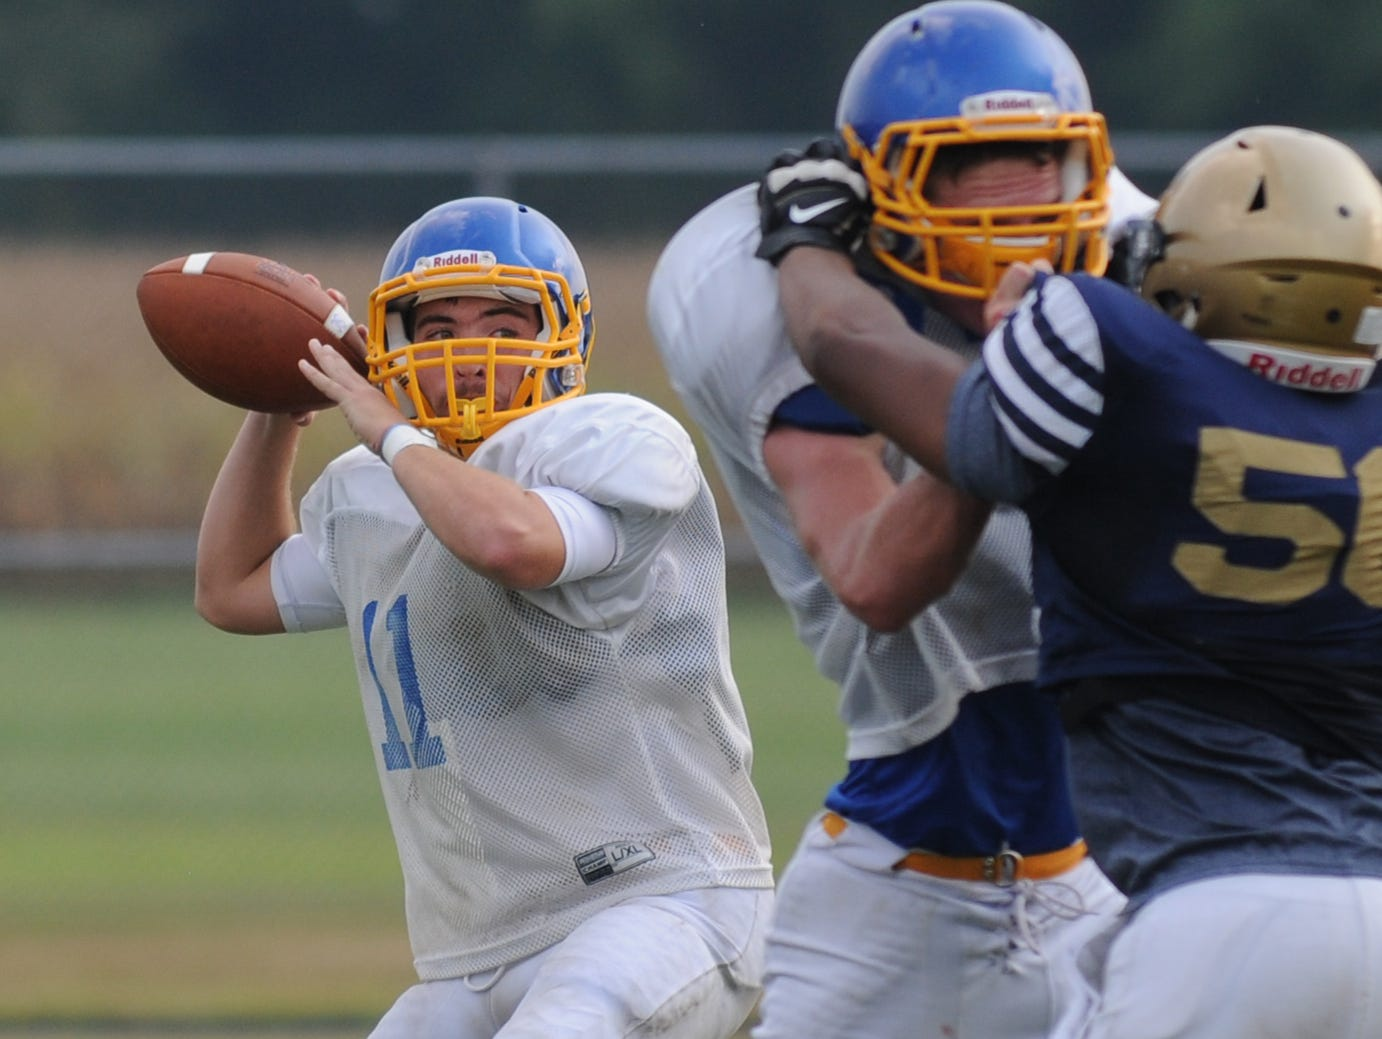 Sussex Central senior Chase Wells took the first snaps of the Knights' scrimmage against Sallies on Thursday, Sept. 3.